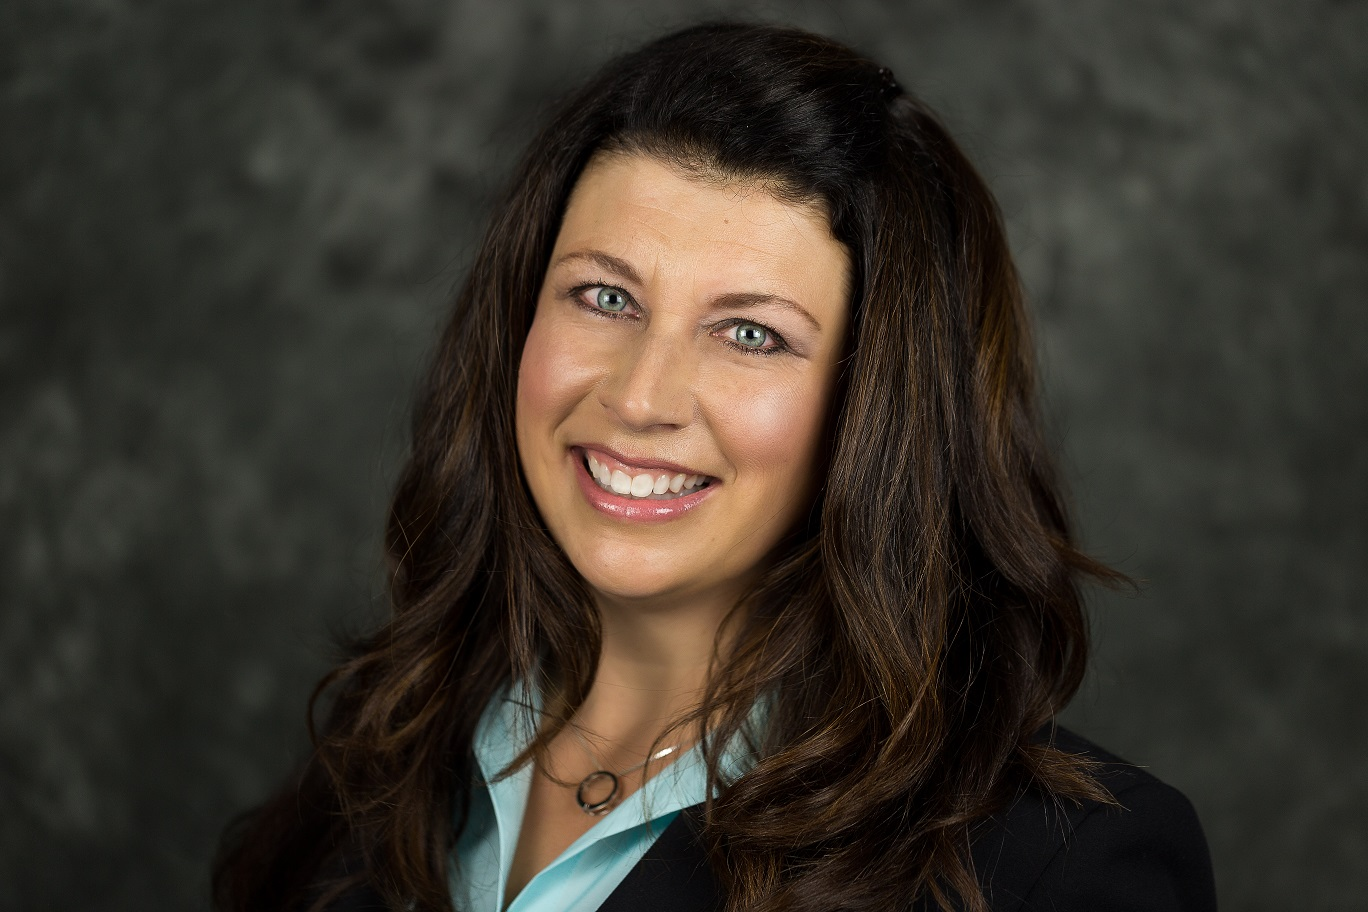 Kristin Oberholtzer Named to Board of Directors of Advantage+